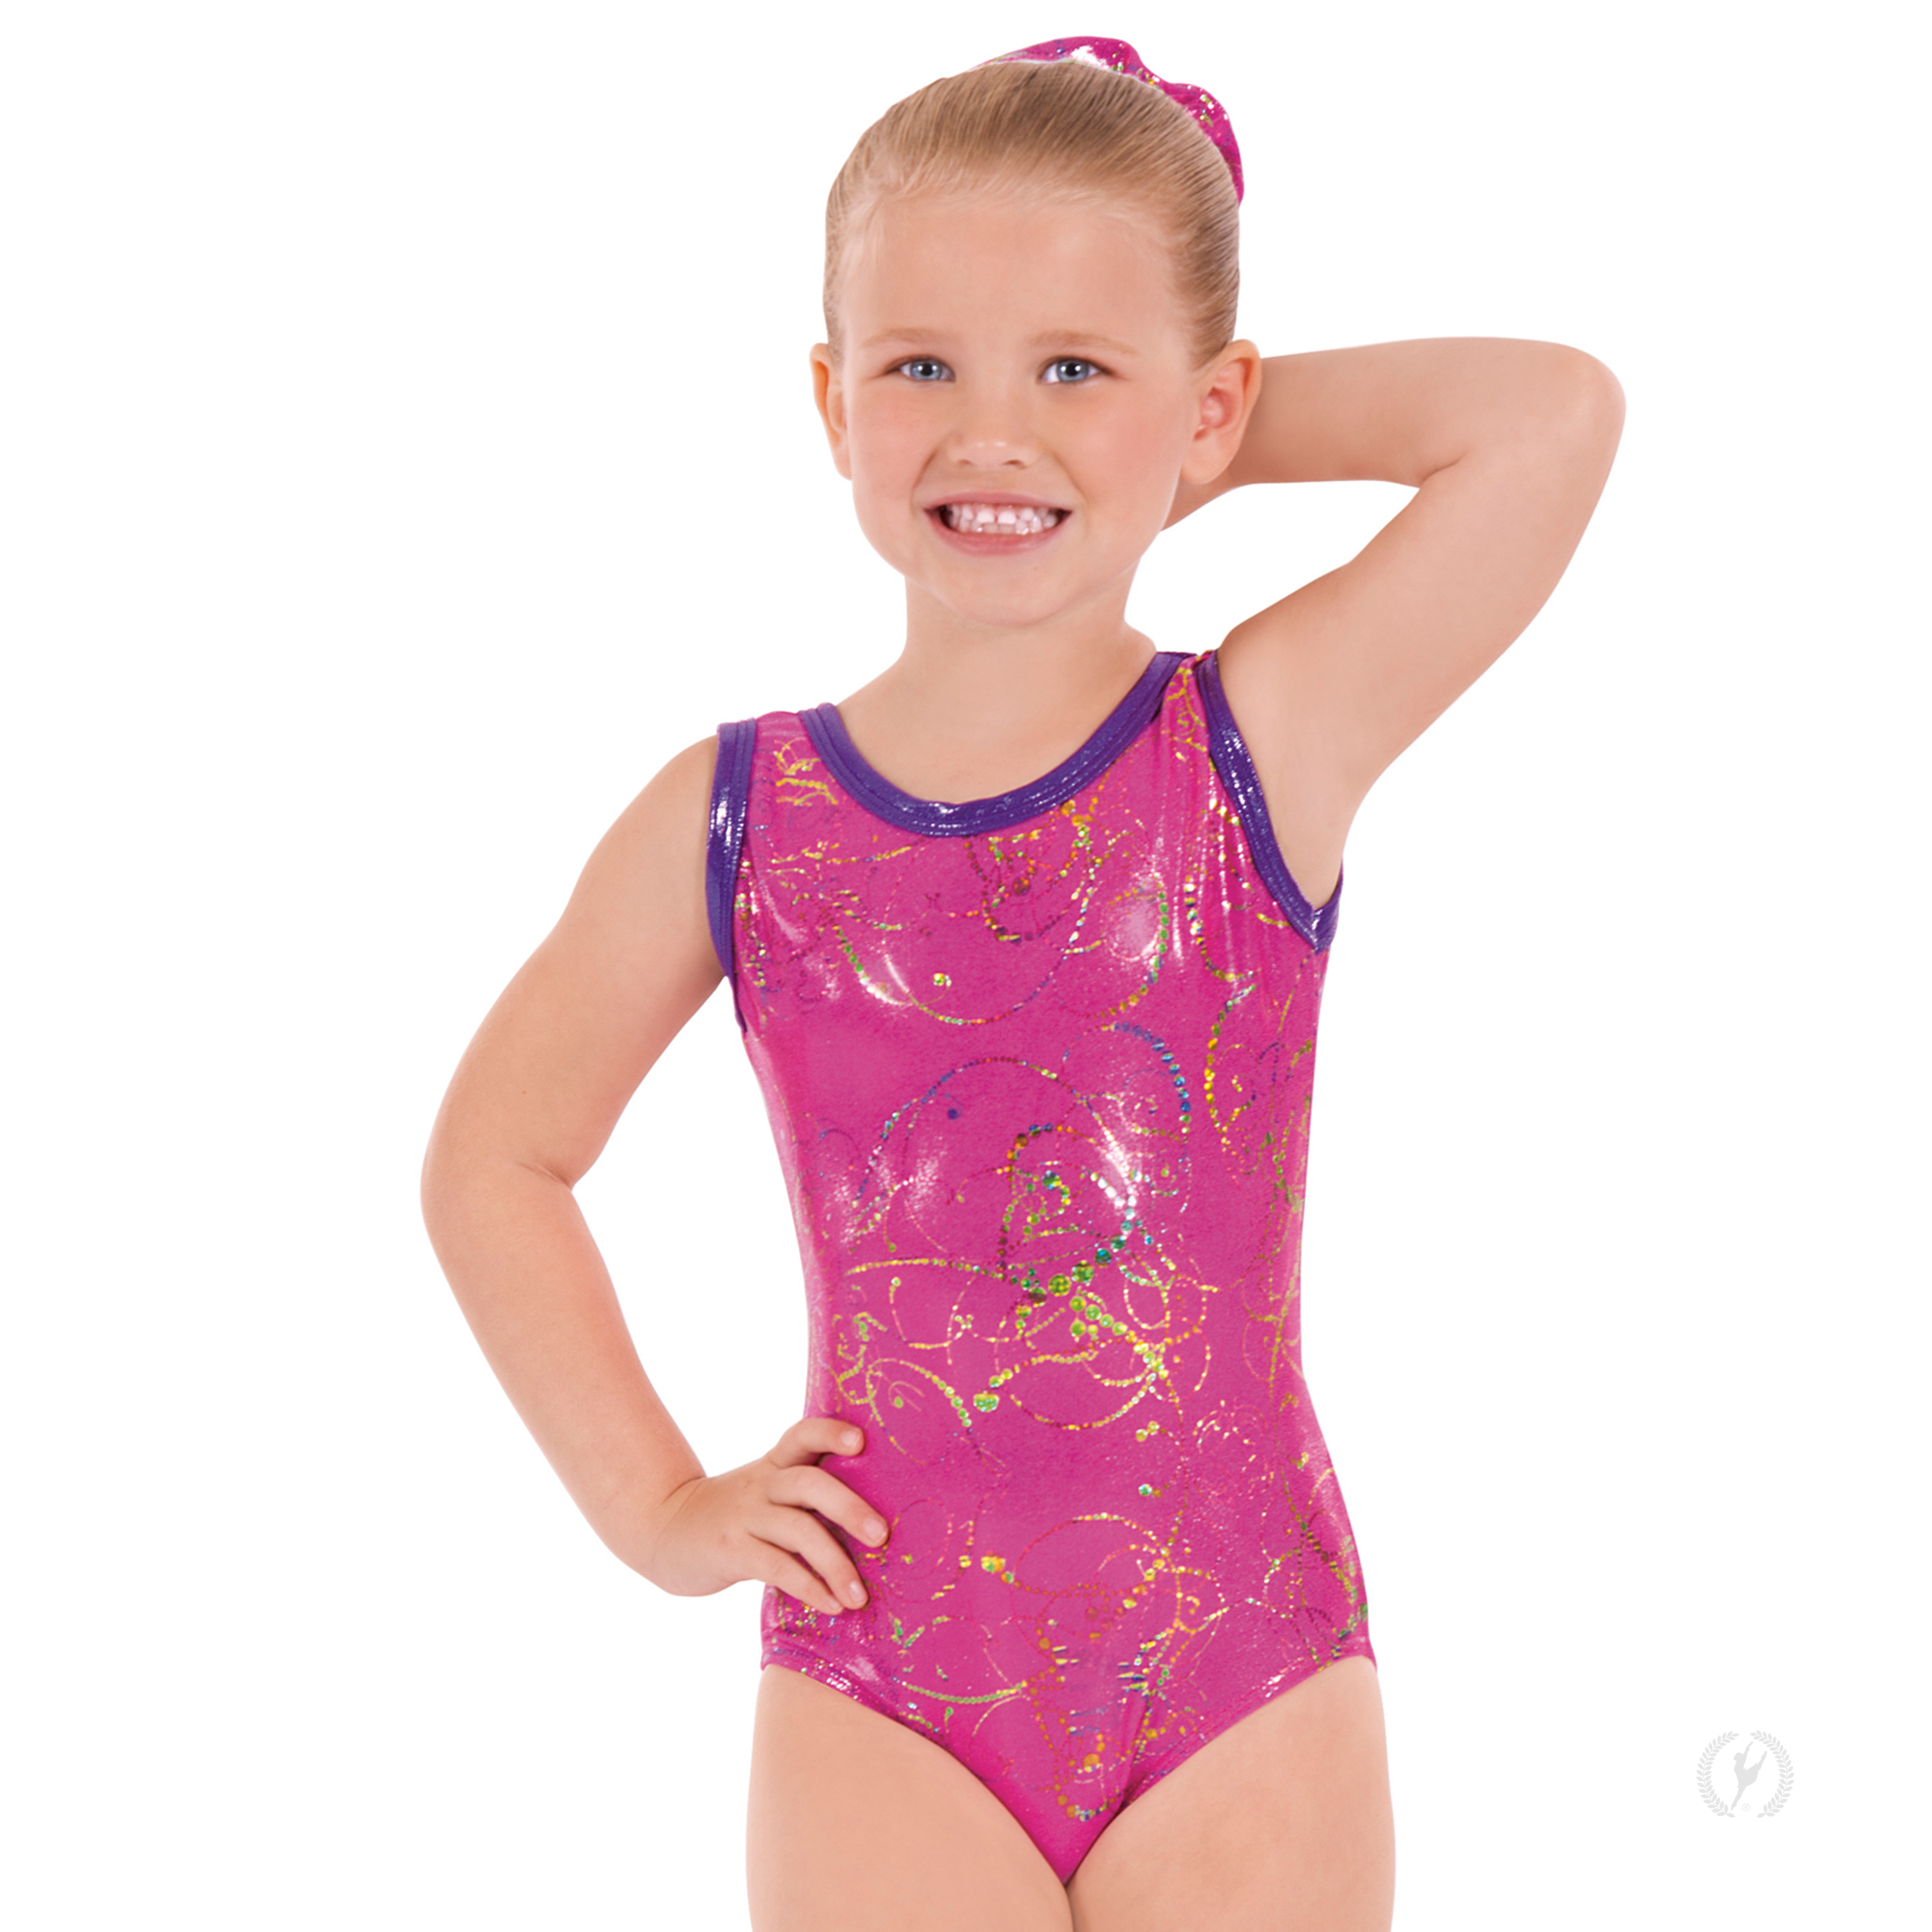 eae117f76 Girls Metallic Splatter Gymnastics Leotard